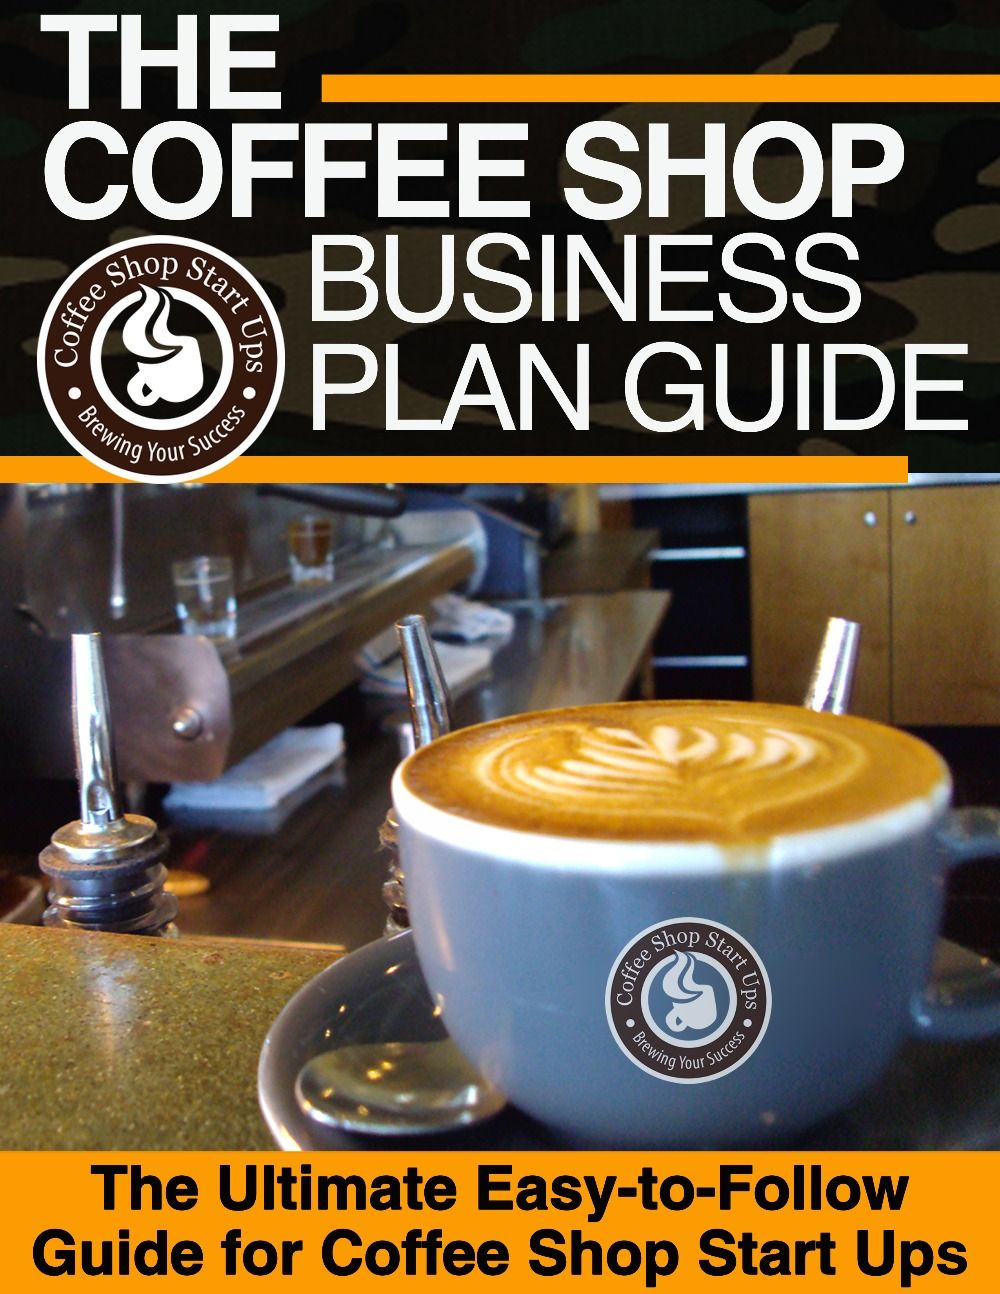 How to Start a Coffee Shop | Coffee Shop Start Ups - Resources to ...